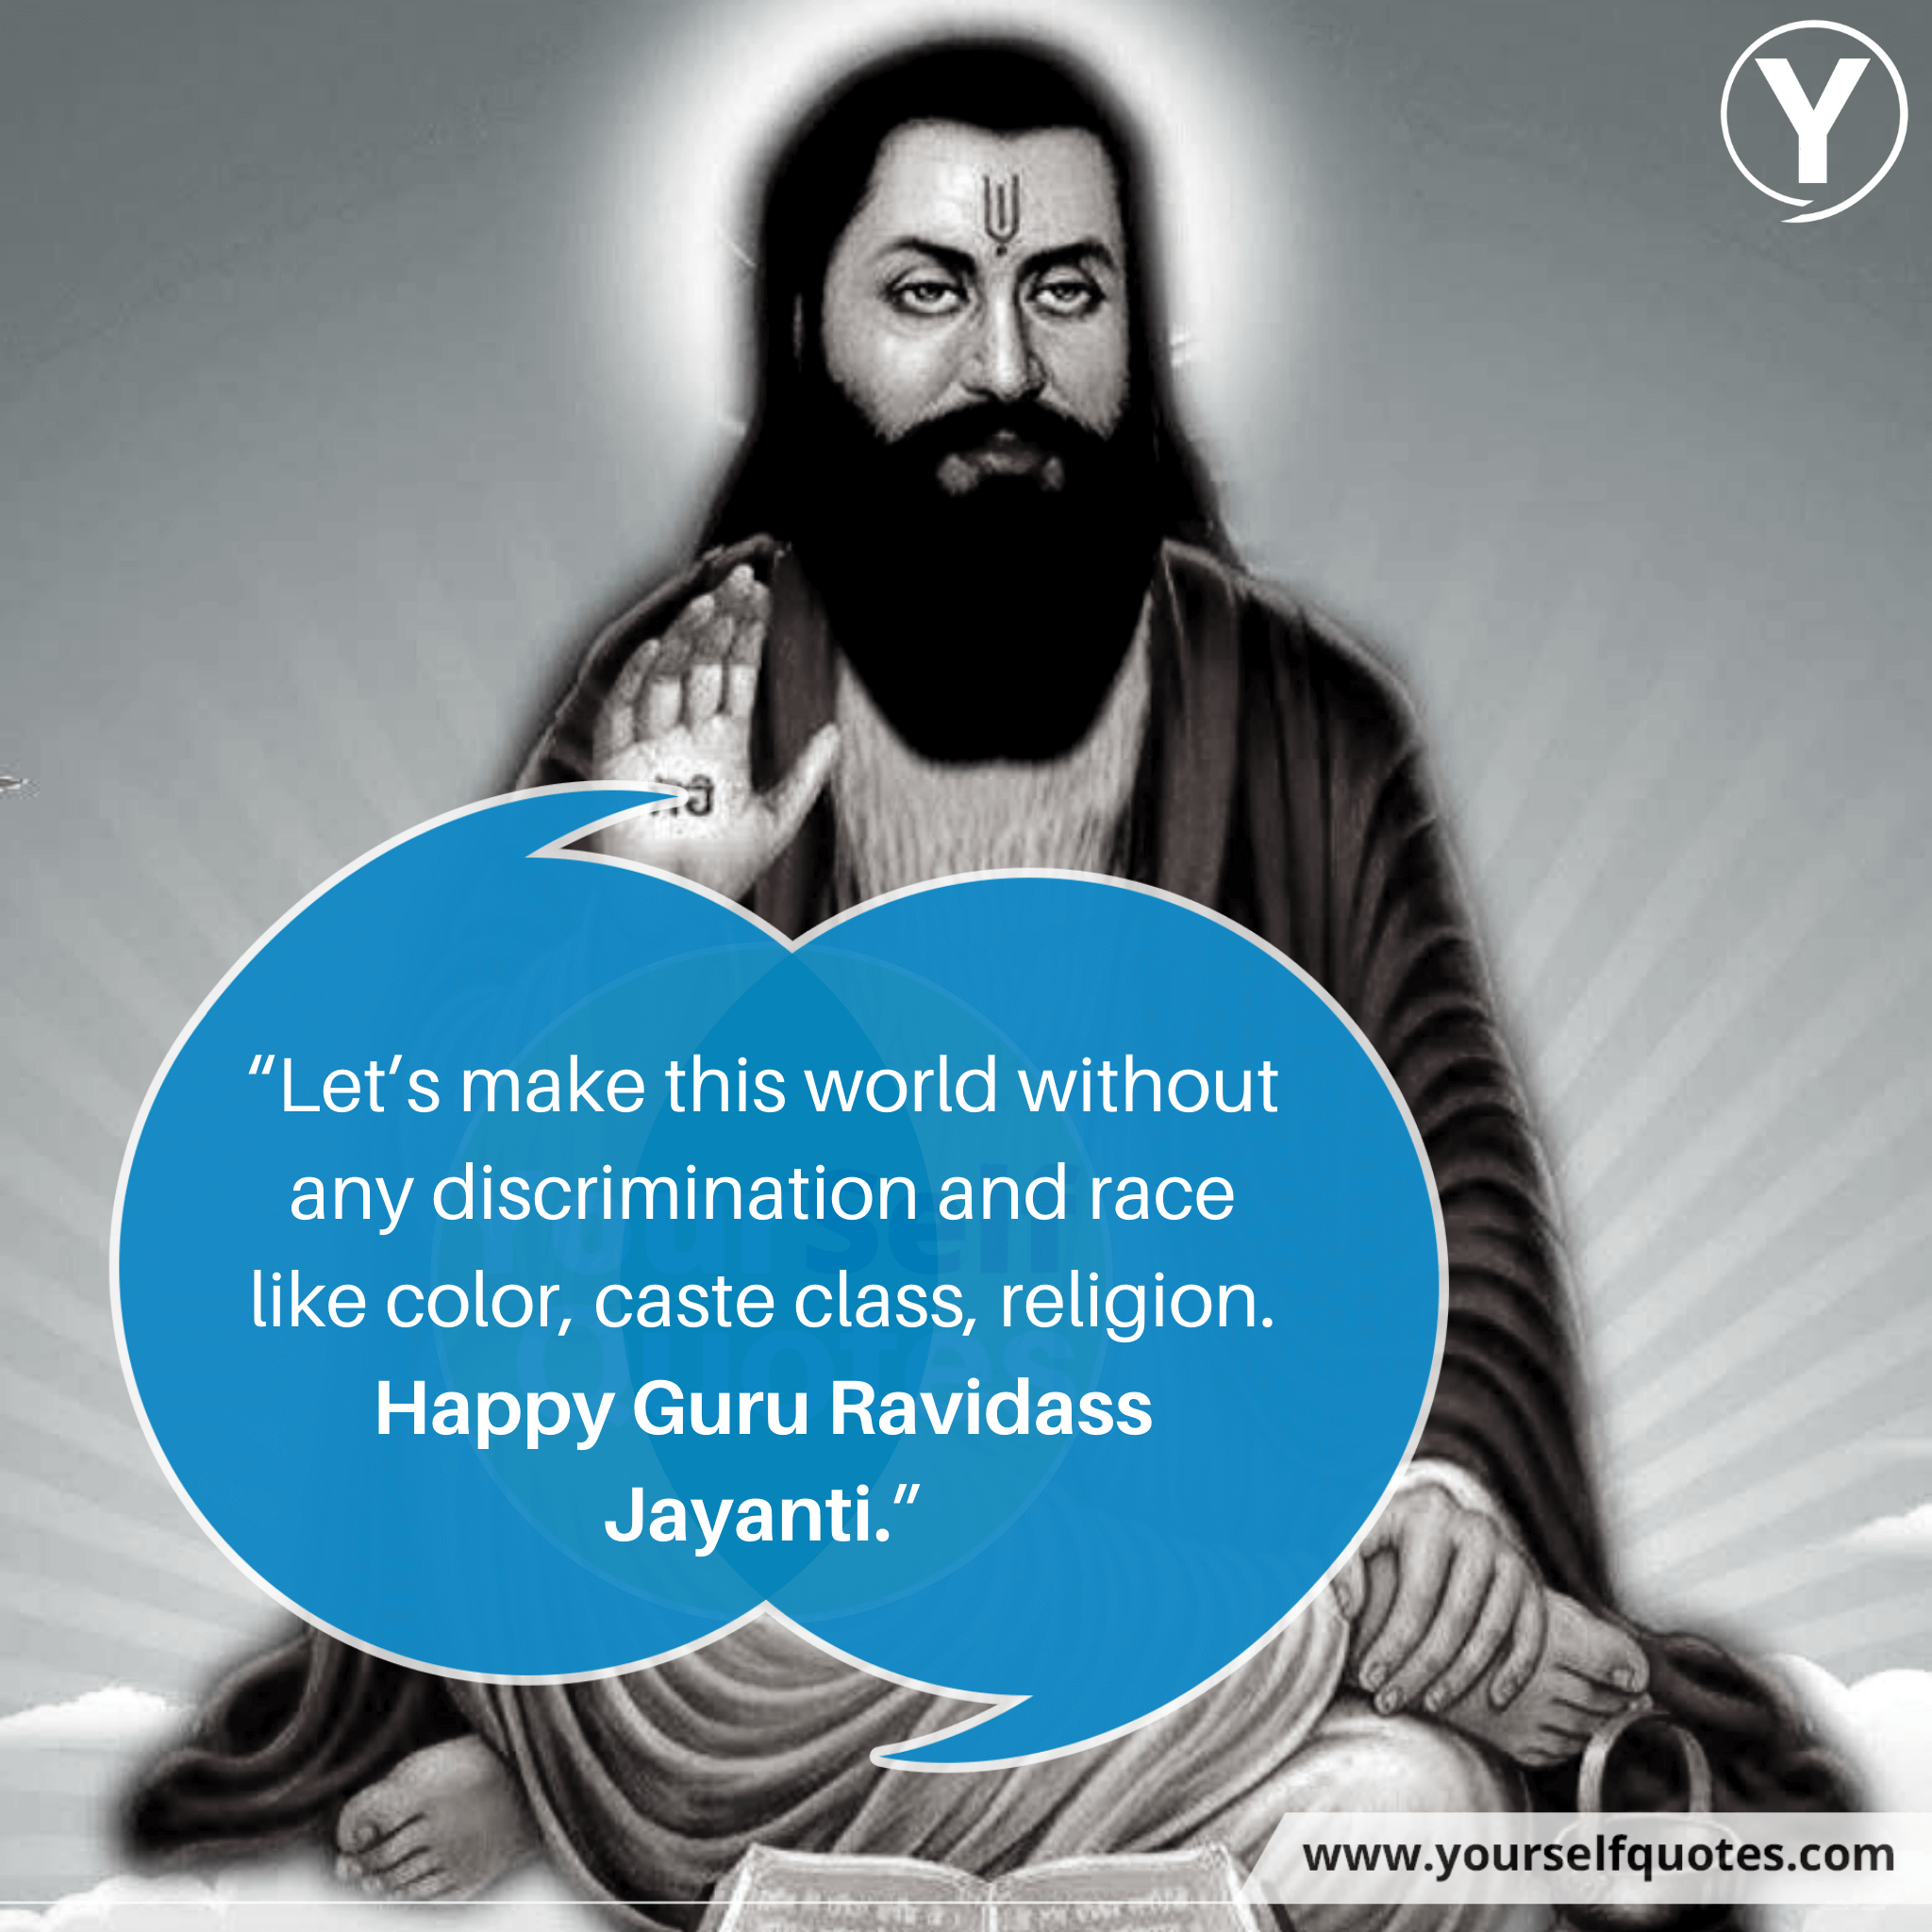 New Ravidas Jayanti Quotes